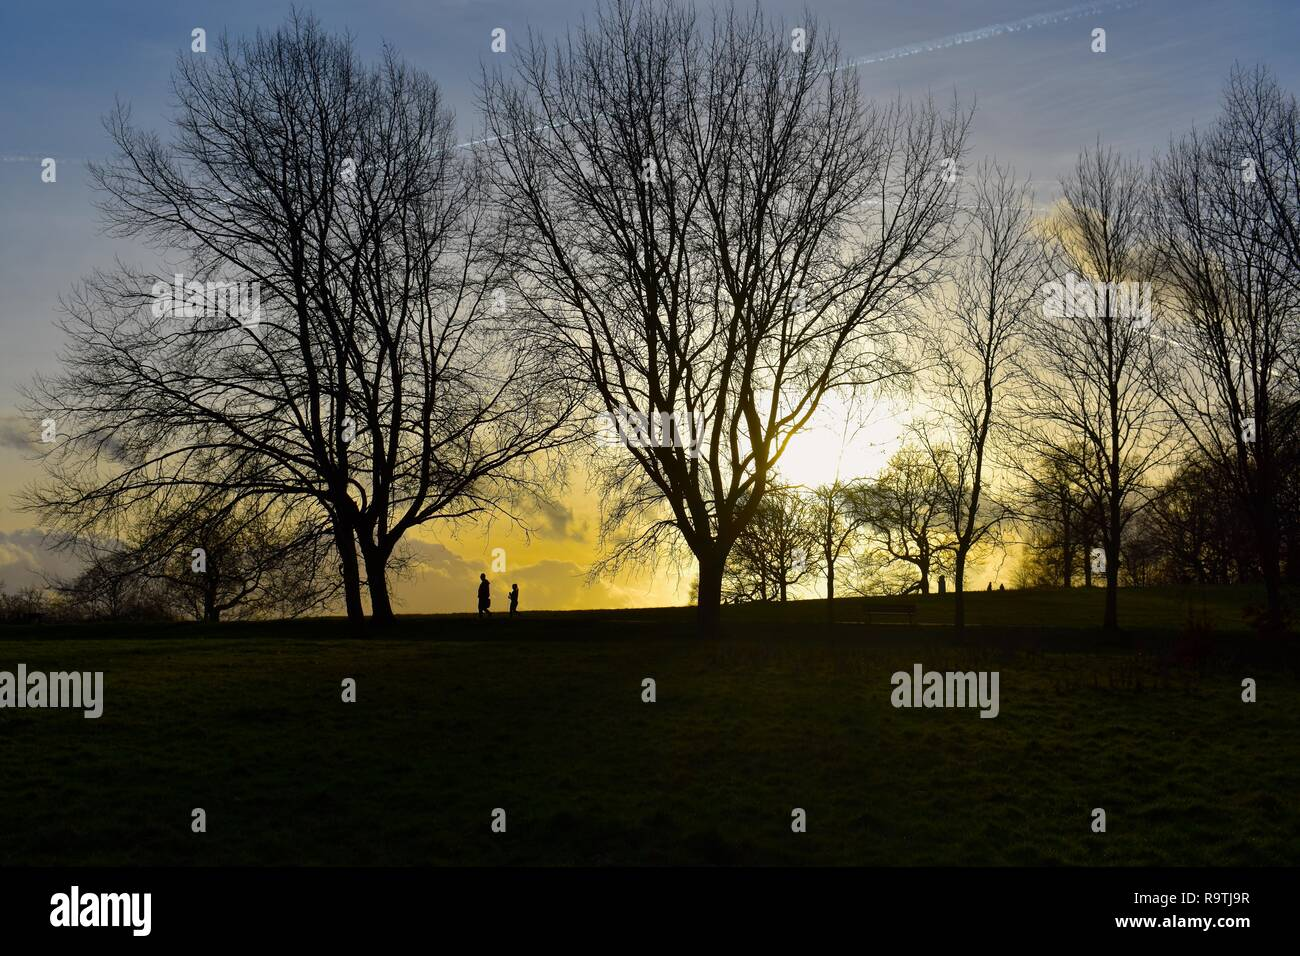 Beautiful sunset landscape on a cold winter evening at Hampstead Heath in North London. Two people are seen in the distance. - Stock Image